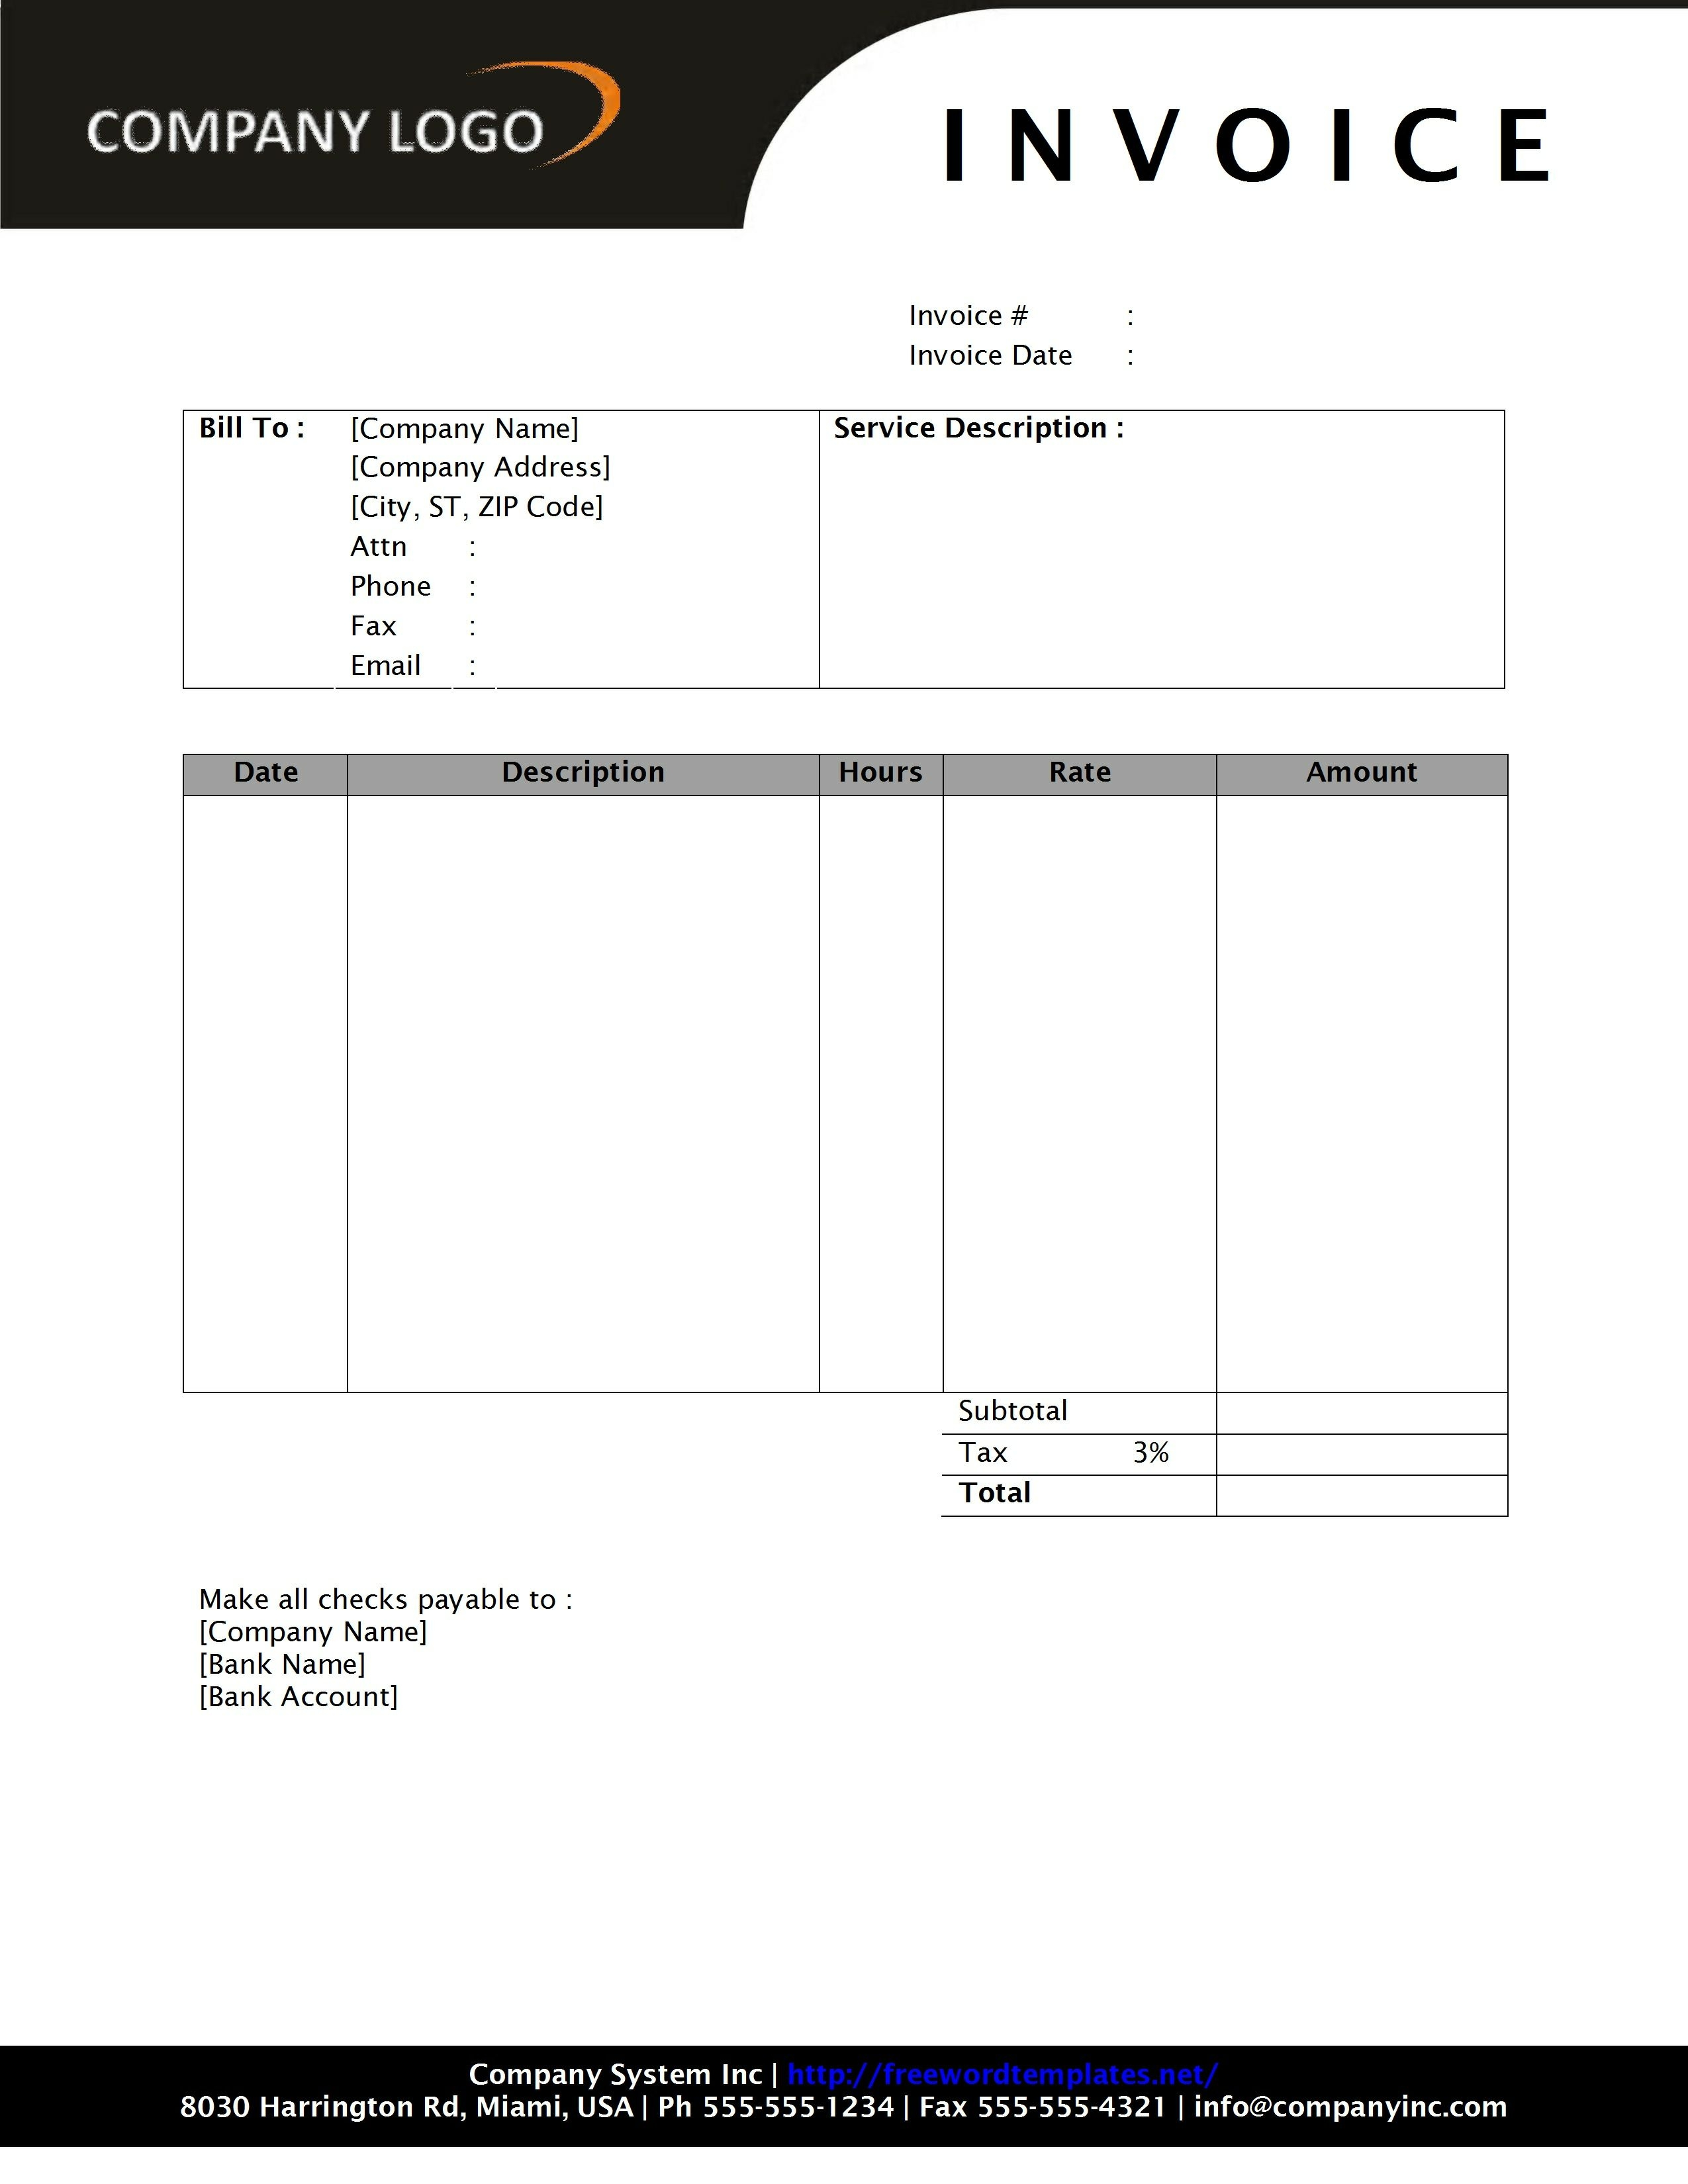 blank invoice template excel office back blank invoice microsoft word